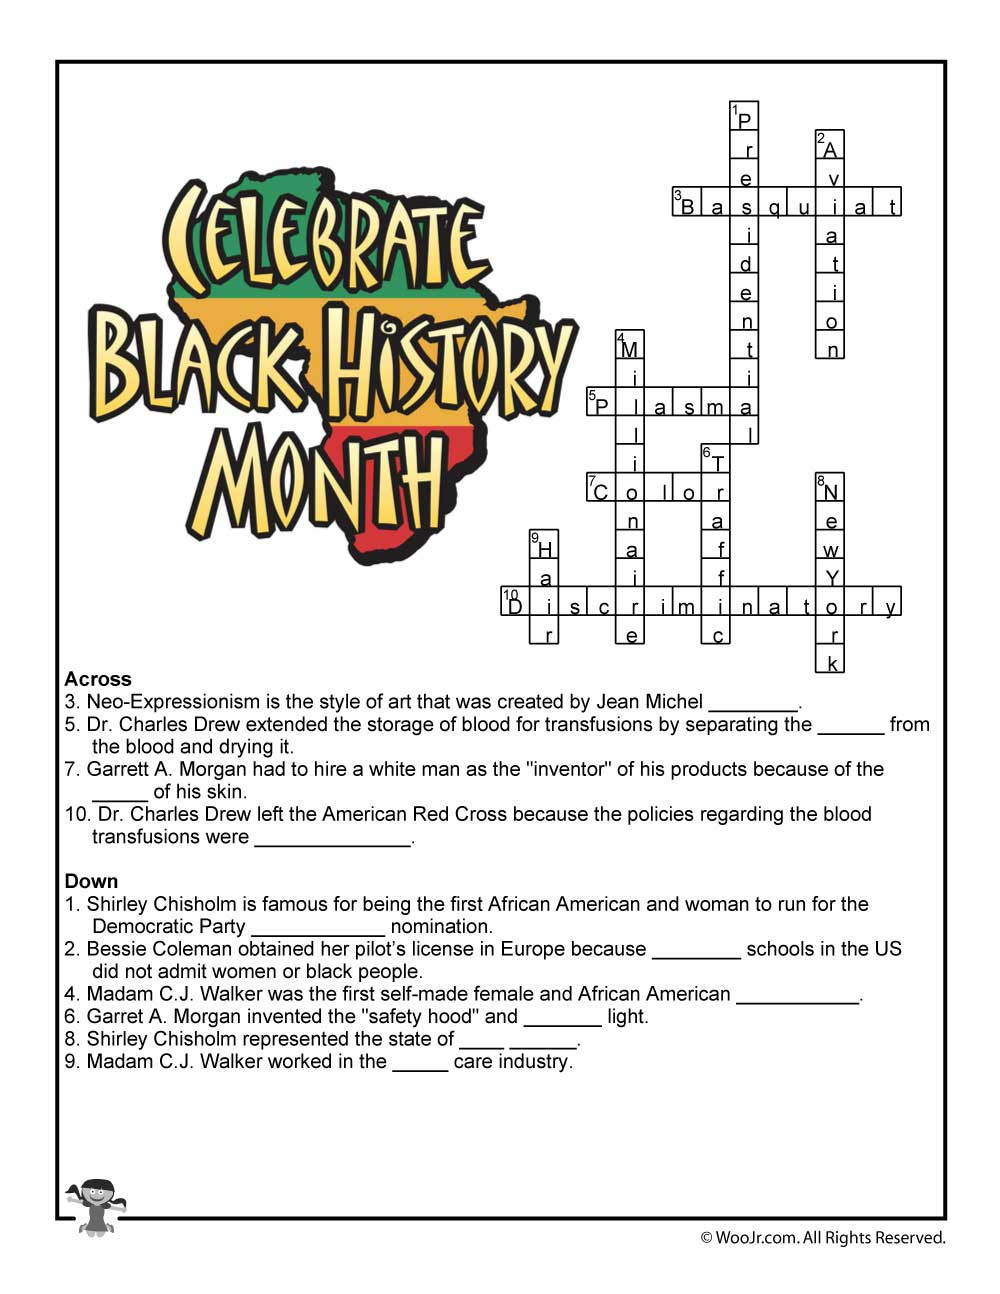 Black History Printable Worksheets Black History Month Crossword Worksheet Answer Key